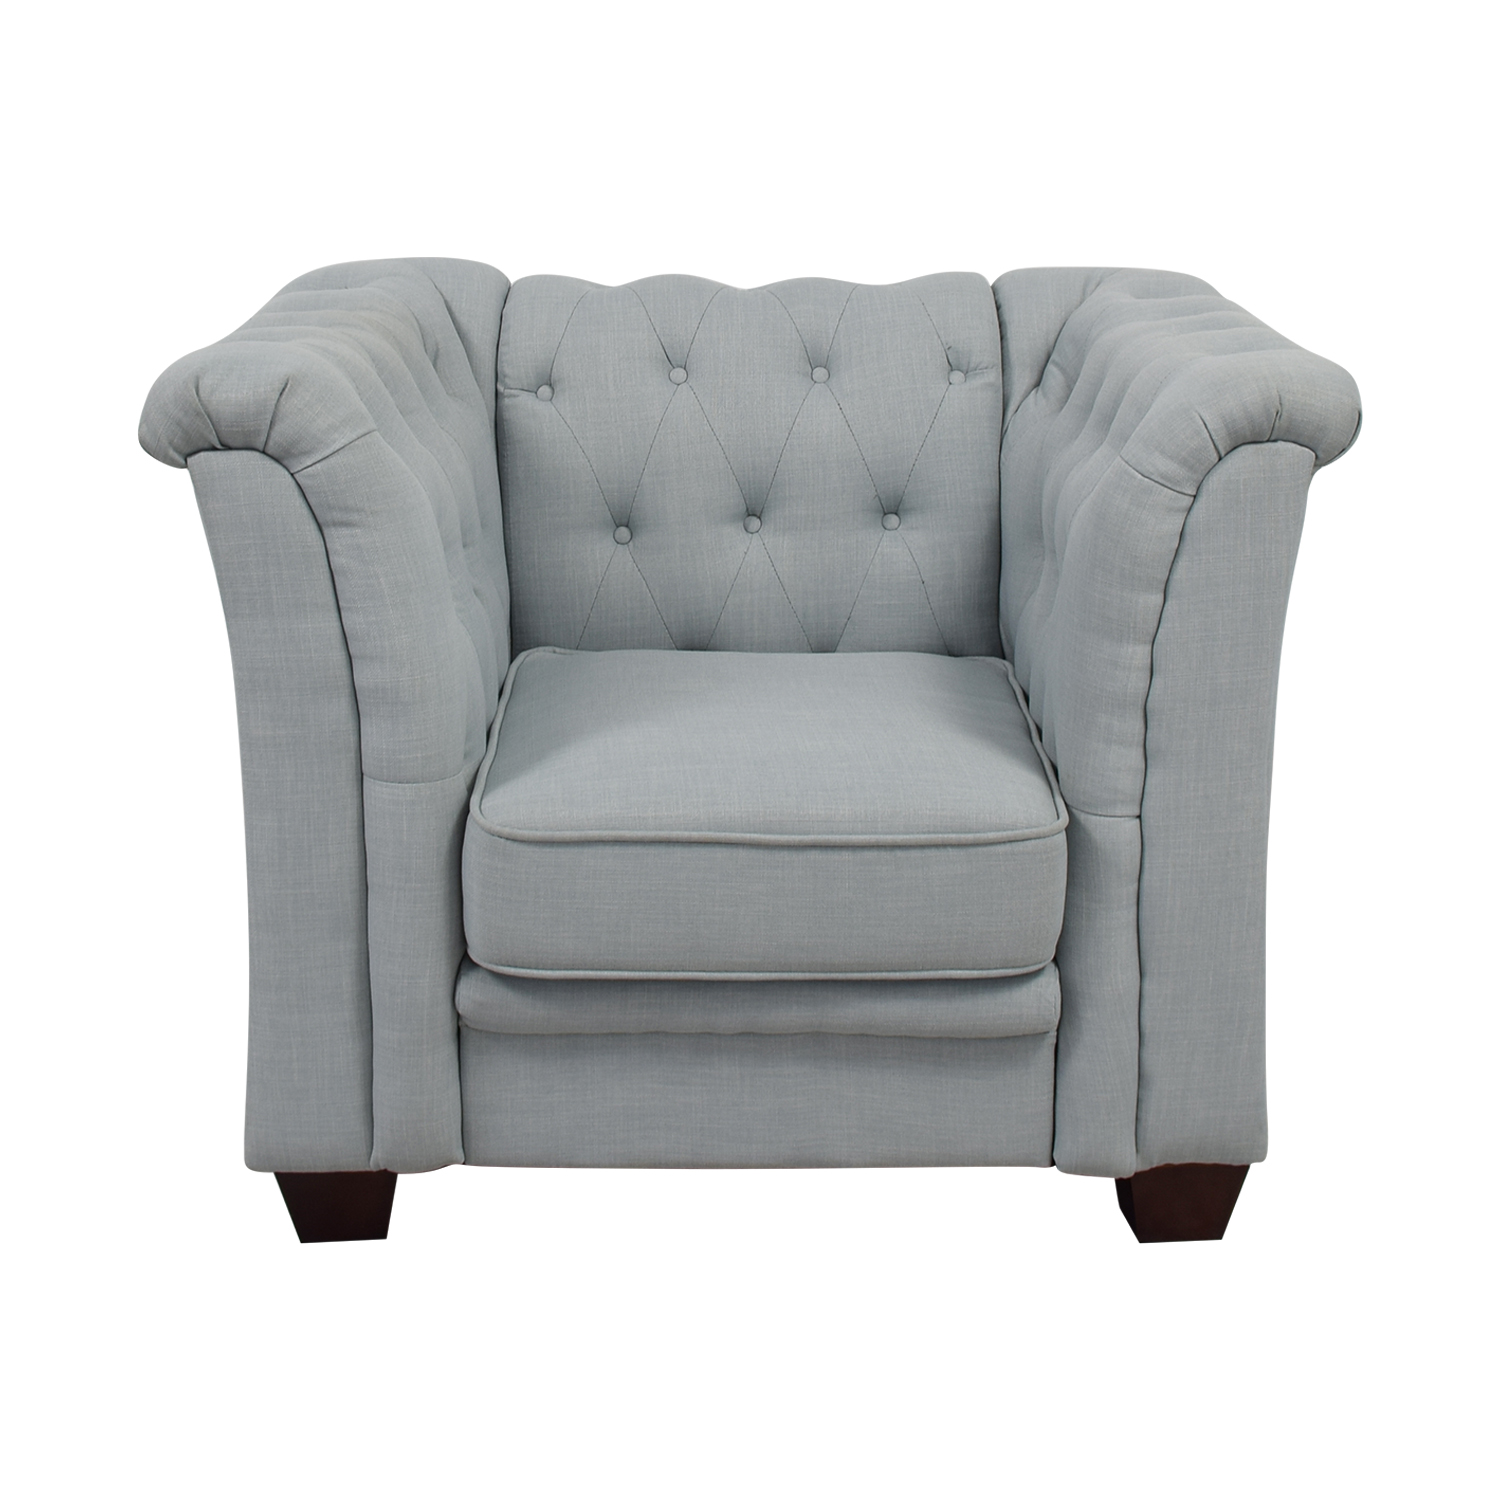 82 Off Delvi Furniture Sky Blue Tufted Accent Chair Chairs  sc 1 th 225 & Blue Tufted Accent Chair | Best Choice Products Modern Tufted ...